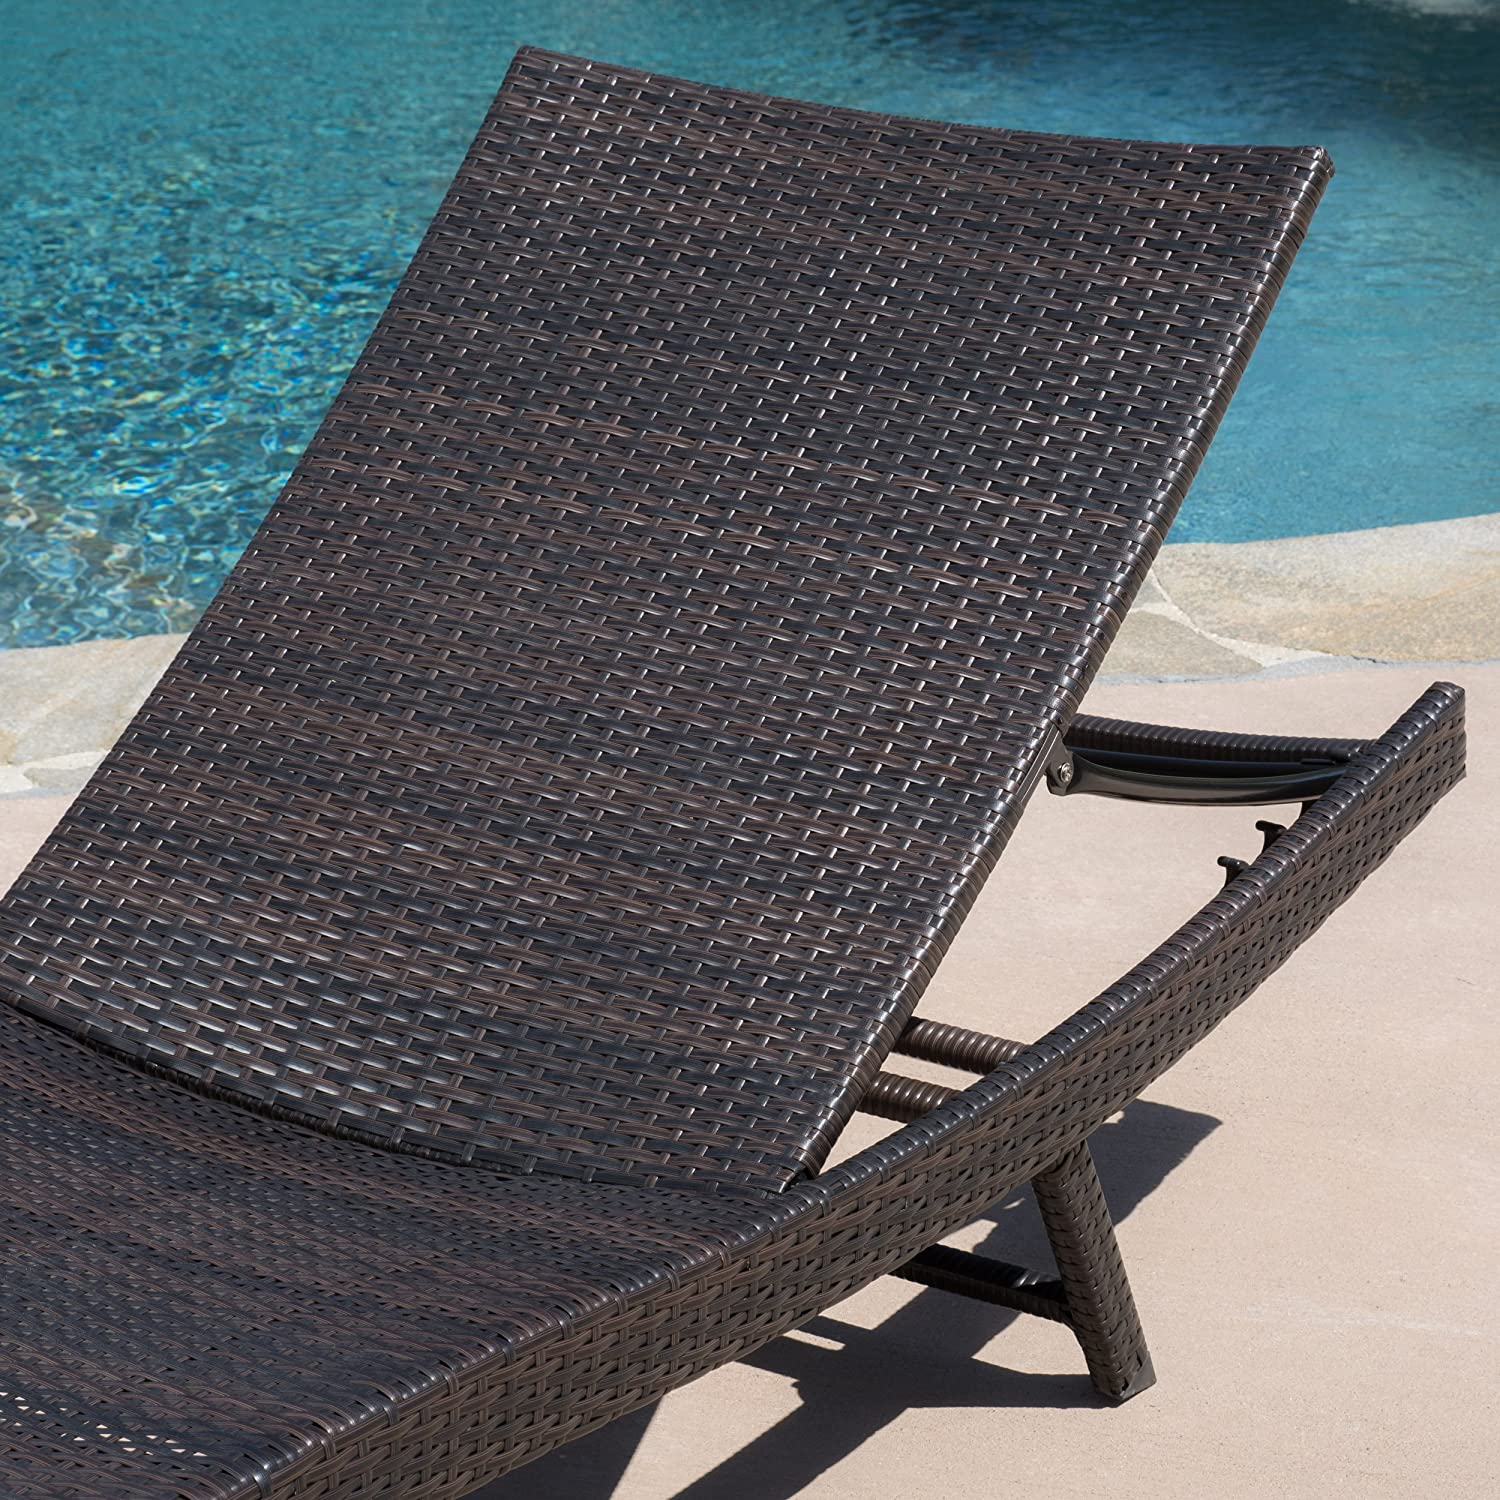 Amazon.com : Eliana Outdoor Brown Wicker Chaise Lounge Chairs (Set on wicker adirondack chairs, wicker rocking chairs, wicker rugs, wicker office chairs, wicker recliner chairs, wicker patio chairs, wicker living room chairs, wicker folding chairs, wicker bedroom chairs, wicker accent chairs, wicker tables, wicker glider chairs, resin wicker chairs, wicker bistro sets, wicker ottomans, wicker pool lounge chairs, wicker dining chairs, wicker vanity chairs, wicker rattan lounge chairs, wicker headboards,